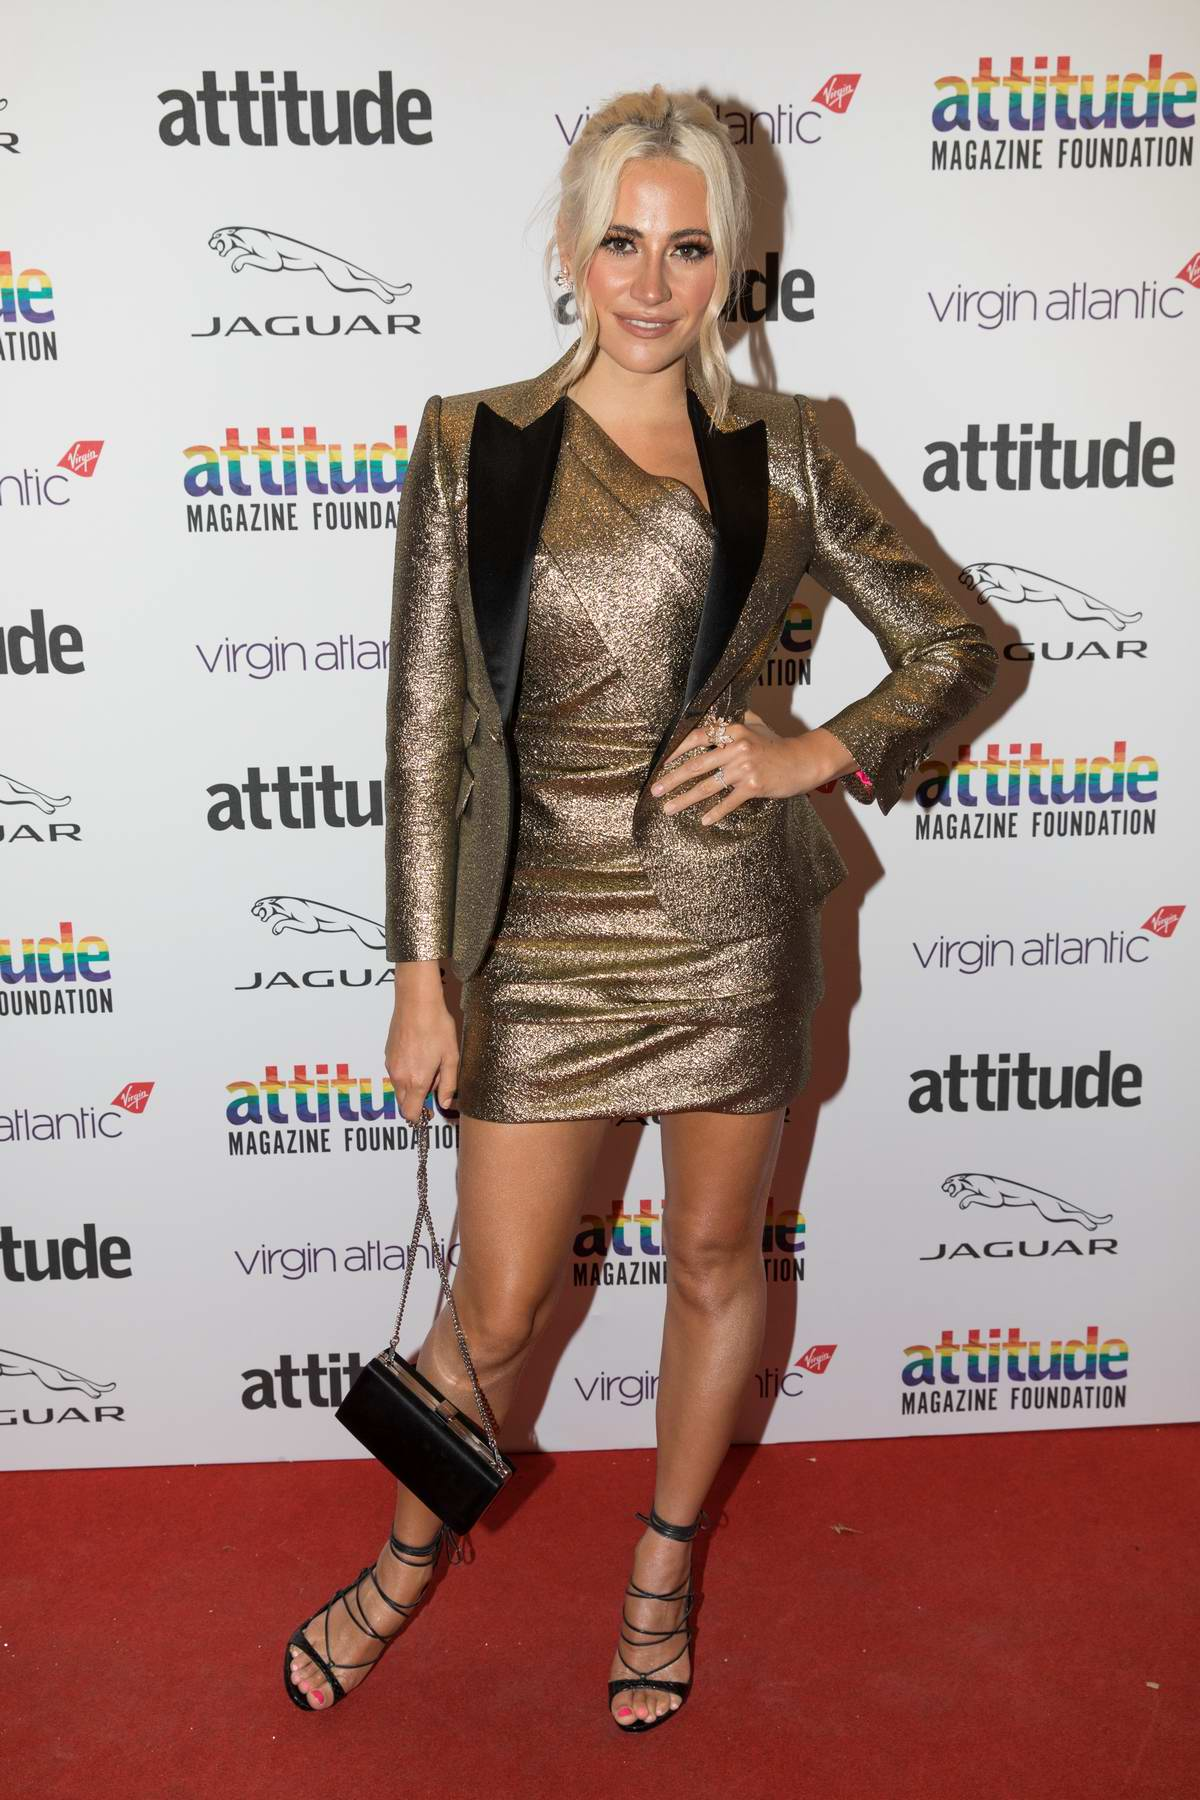 Pixie Lott attends the Virgin Atlantic Attitude Awards 2019 at The Roundhouse in London, UK